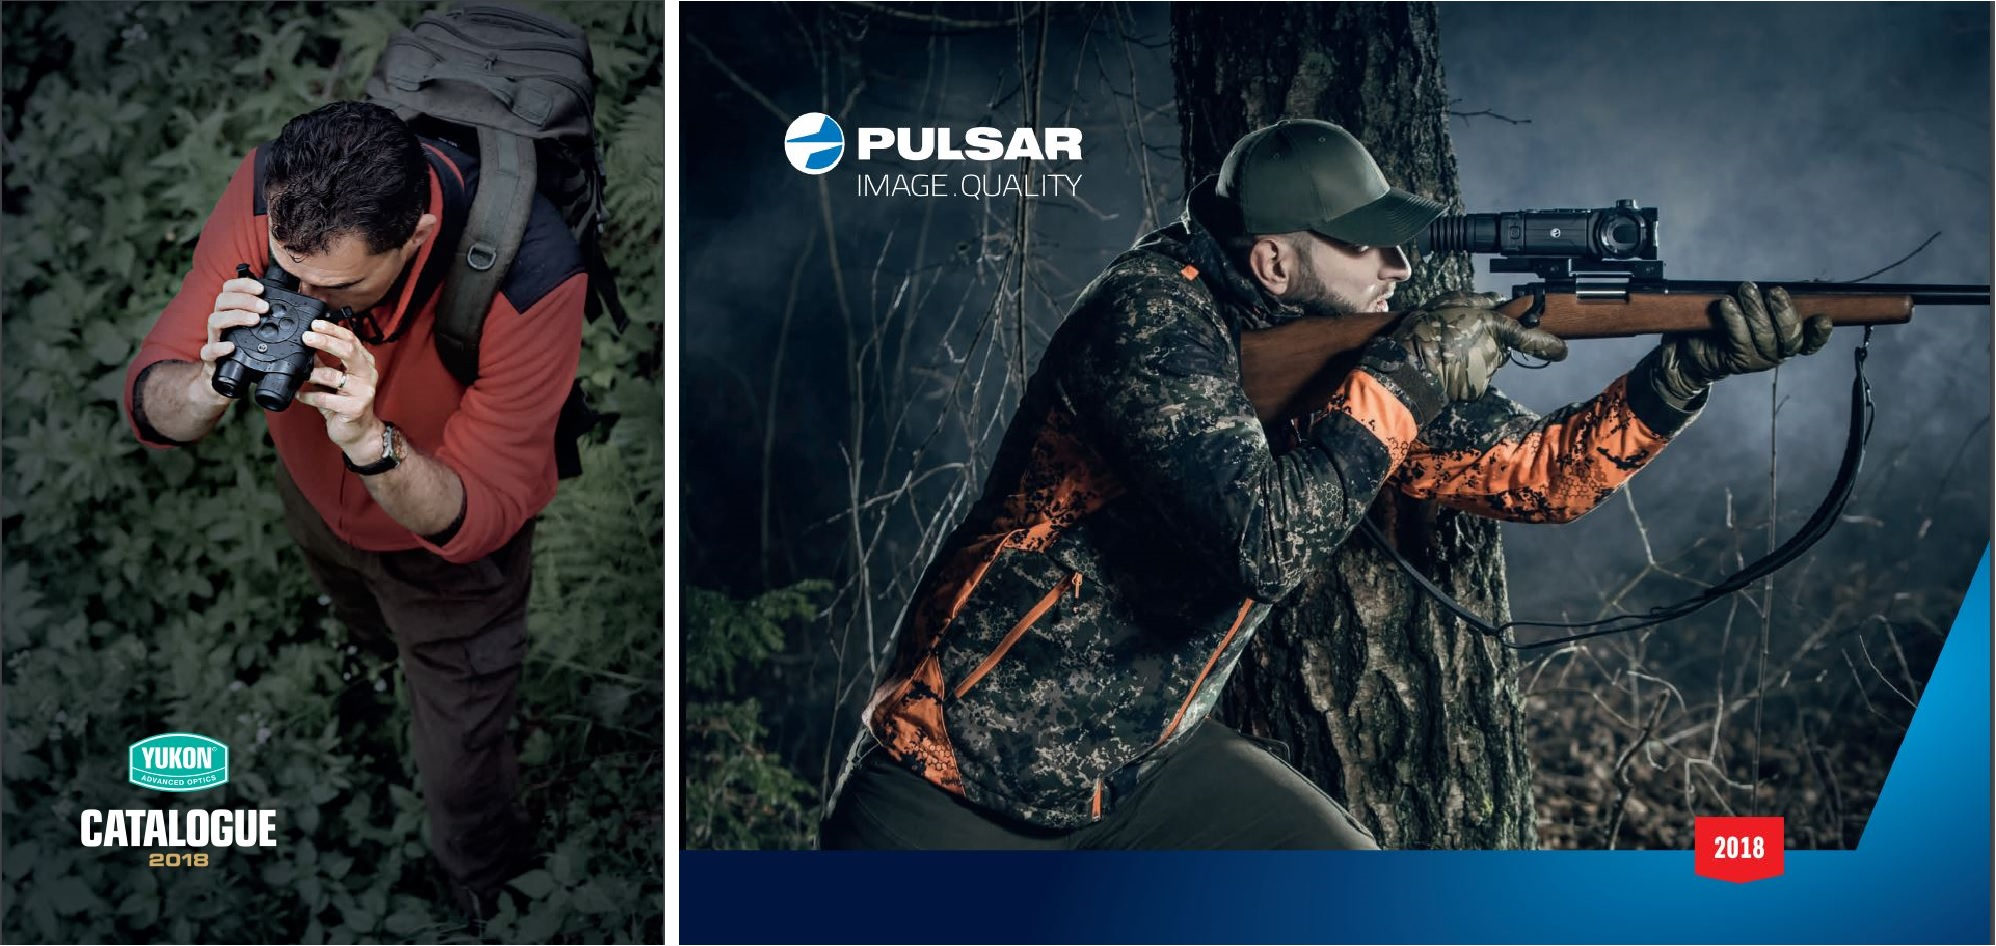 Optics catalog from YUKON Advanced Optics and Pulsar for 2018.